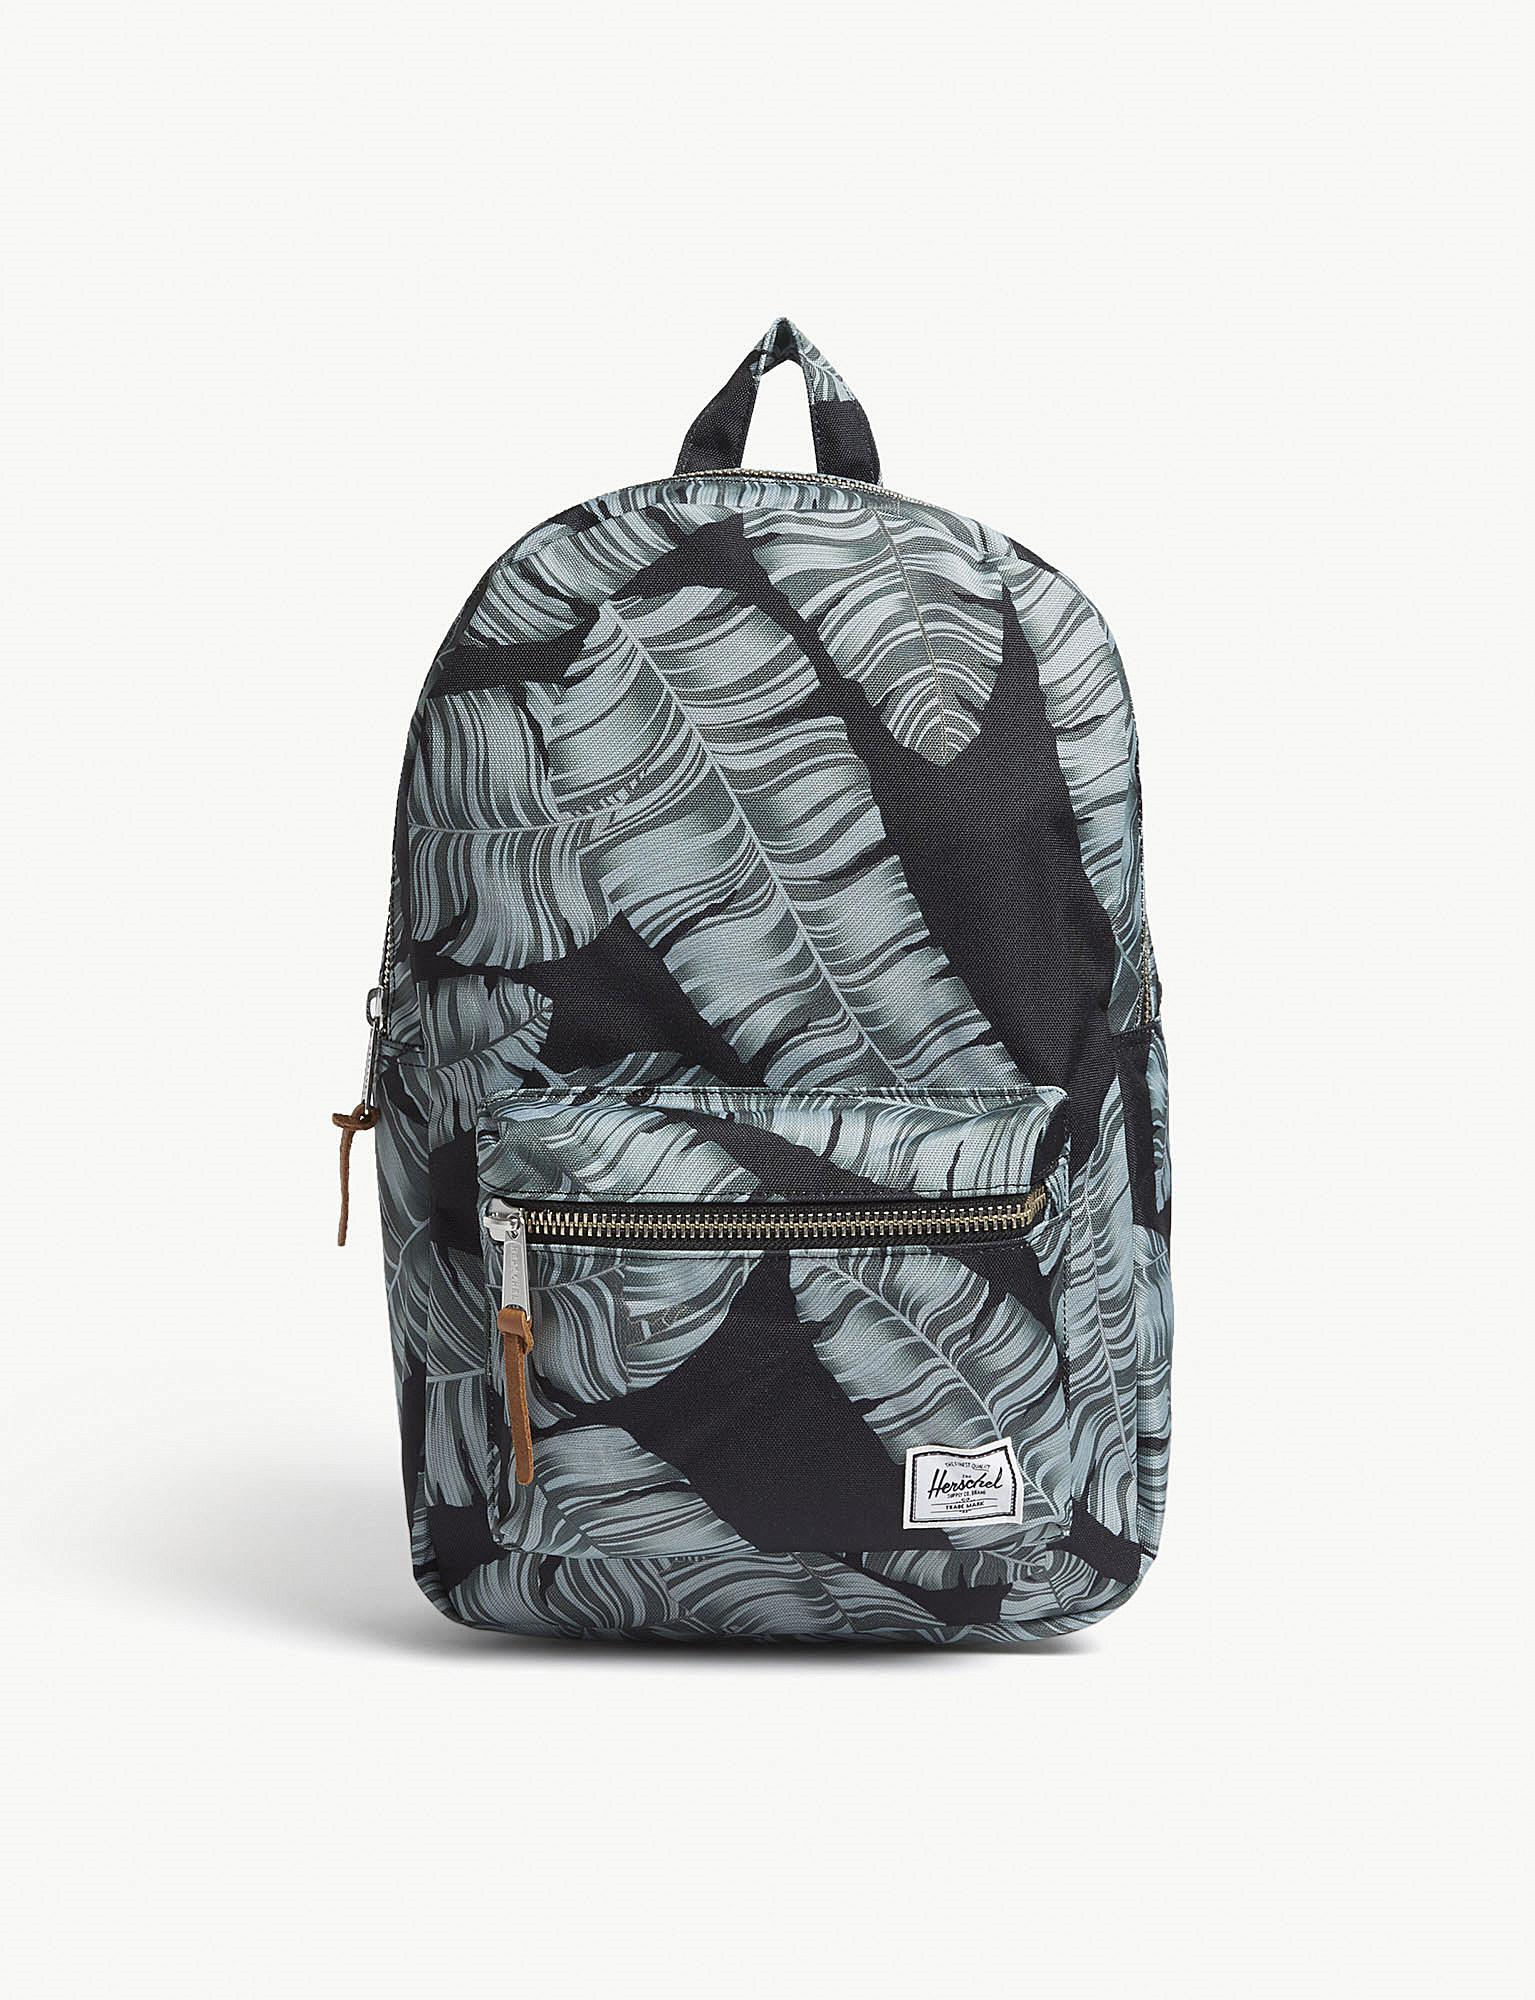 Lyst - Herschel Supply Co. . Black Palm Floral Settlement Mid Volume ... 48e9e0b426565